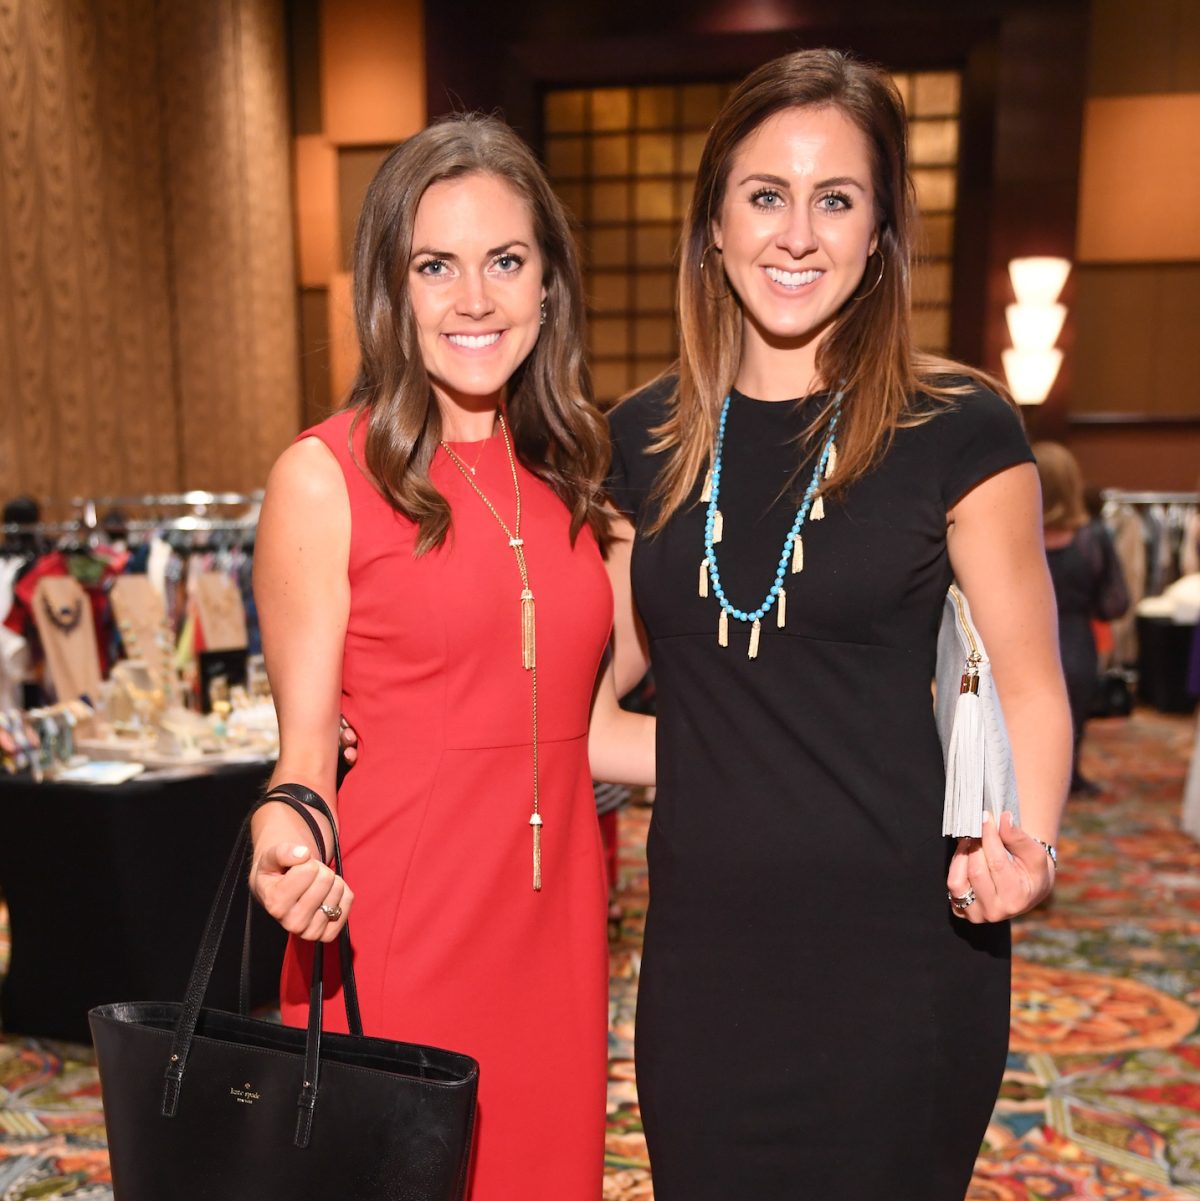 Lauren Paine, Jessica Morrison at Latin Women's Initiative Luncheon